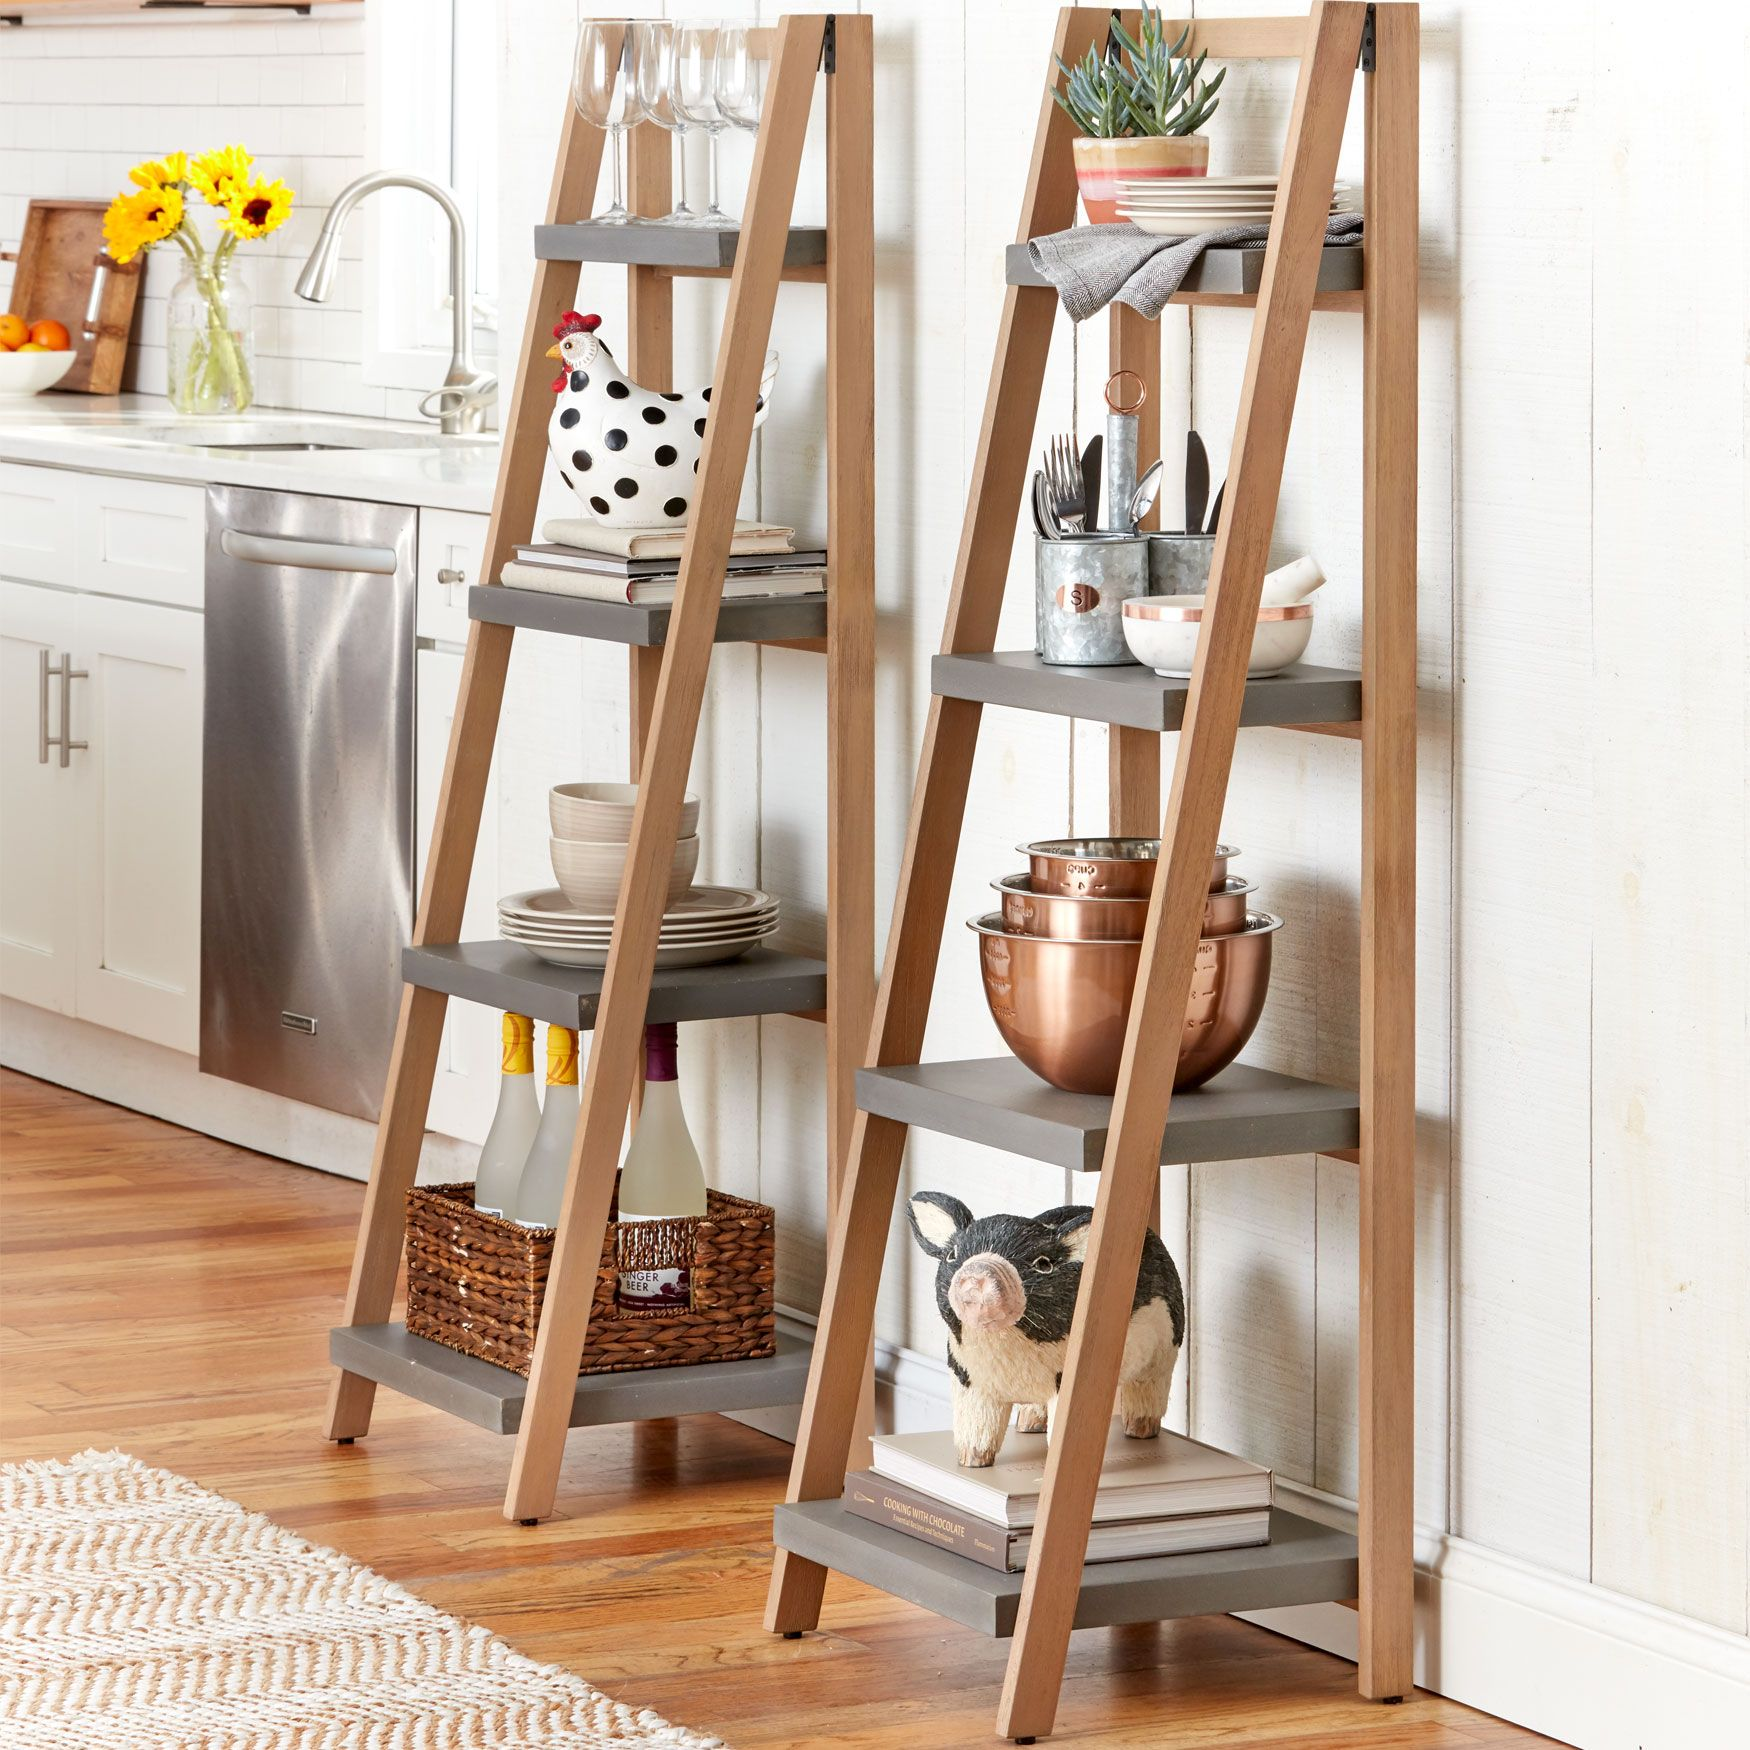 Four Graduating Shelves Provide Ample Space For Displaying Trinkets Photographs Books Lightweight And Durable This Ladder Shelf Decor Ladder Shelf Shelves